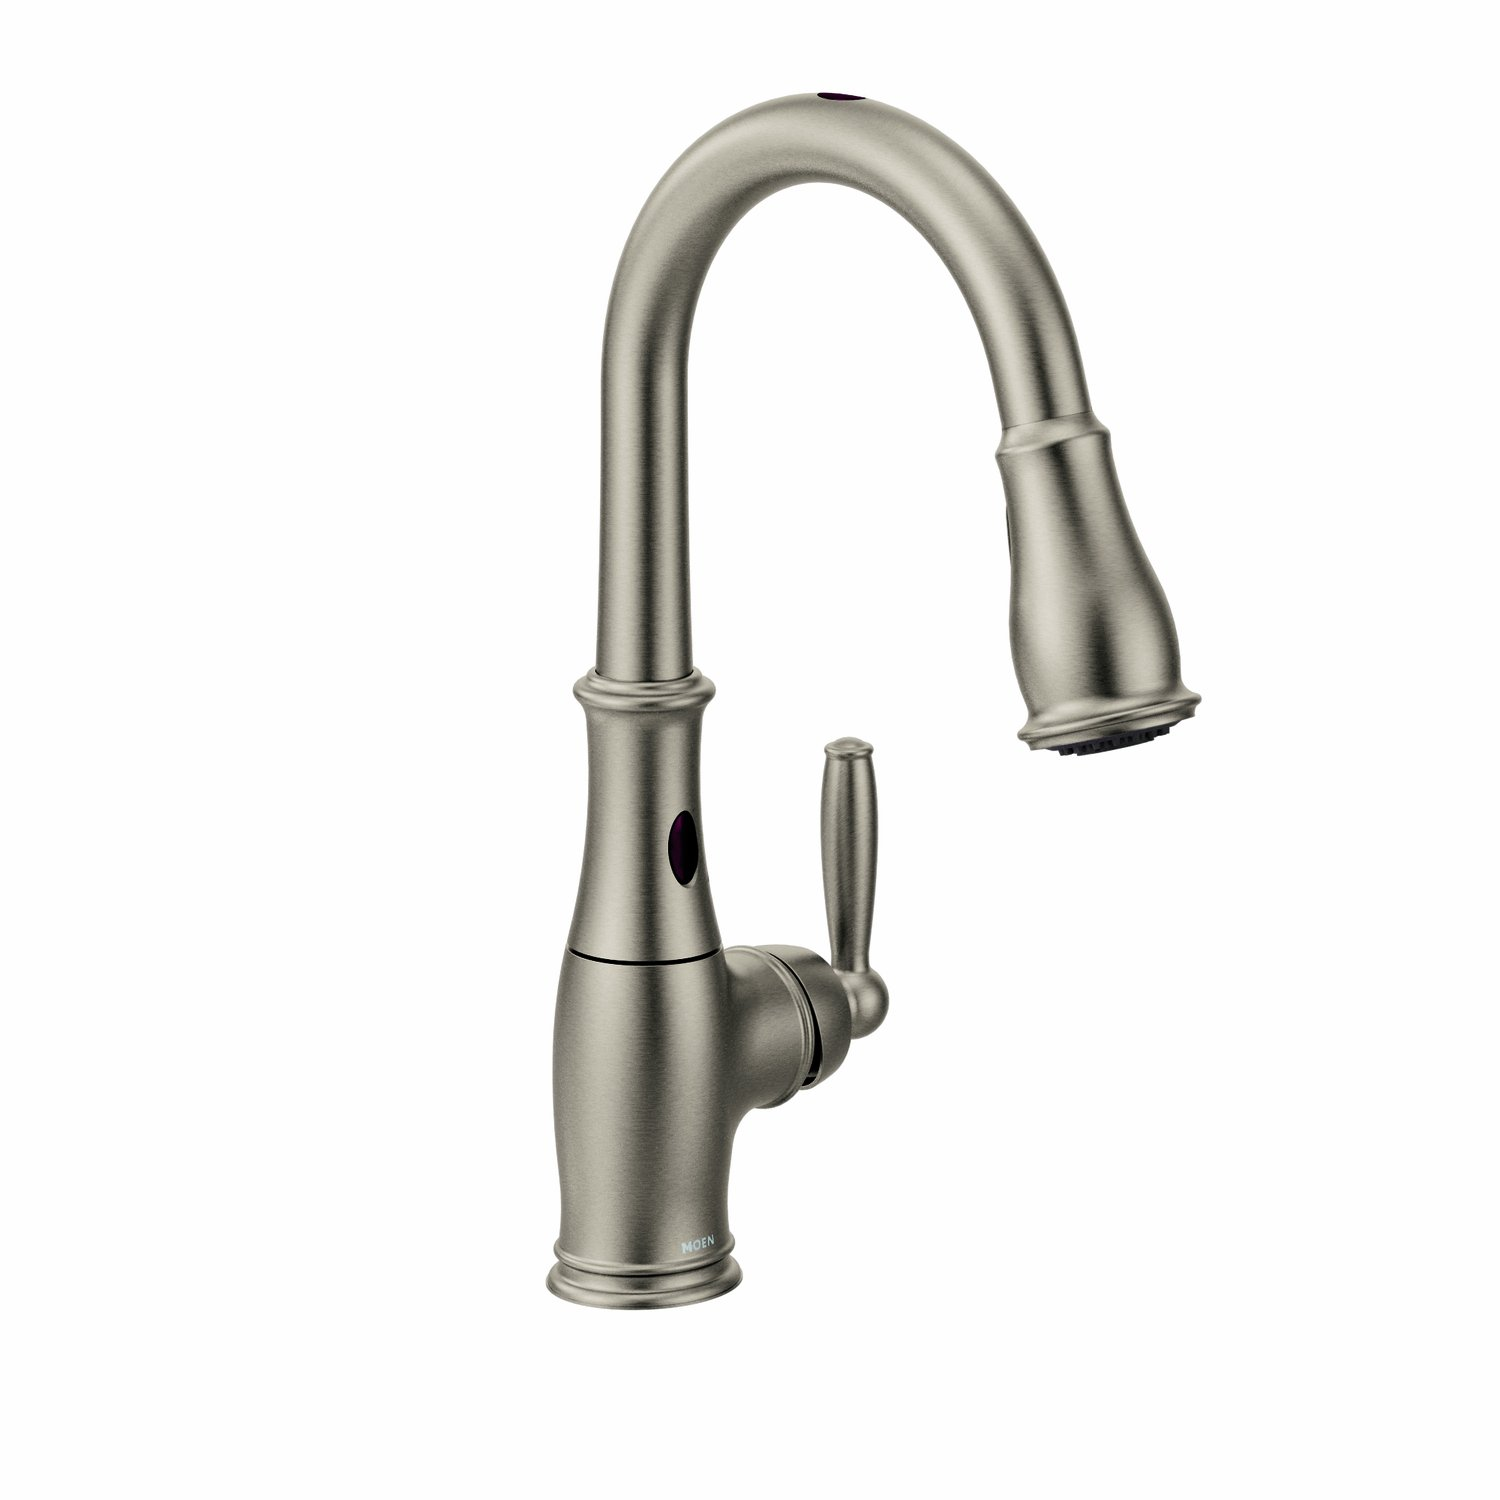 pict models for moen diagram chrome single marvelous kitchen onehandle ideas and parts fresh zdif best installation handle replacement trend faucet